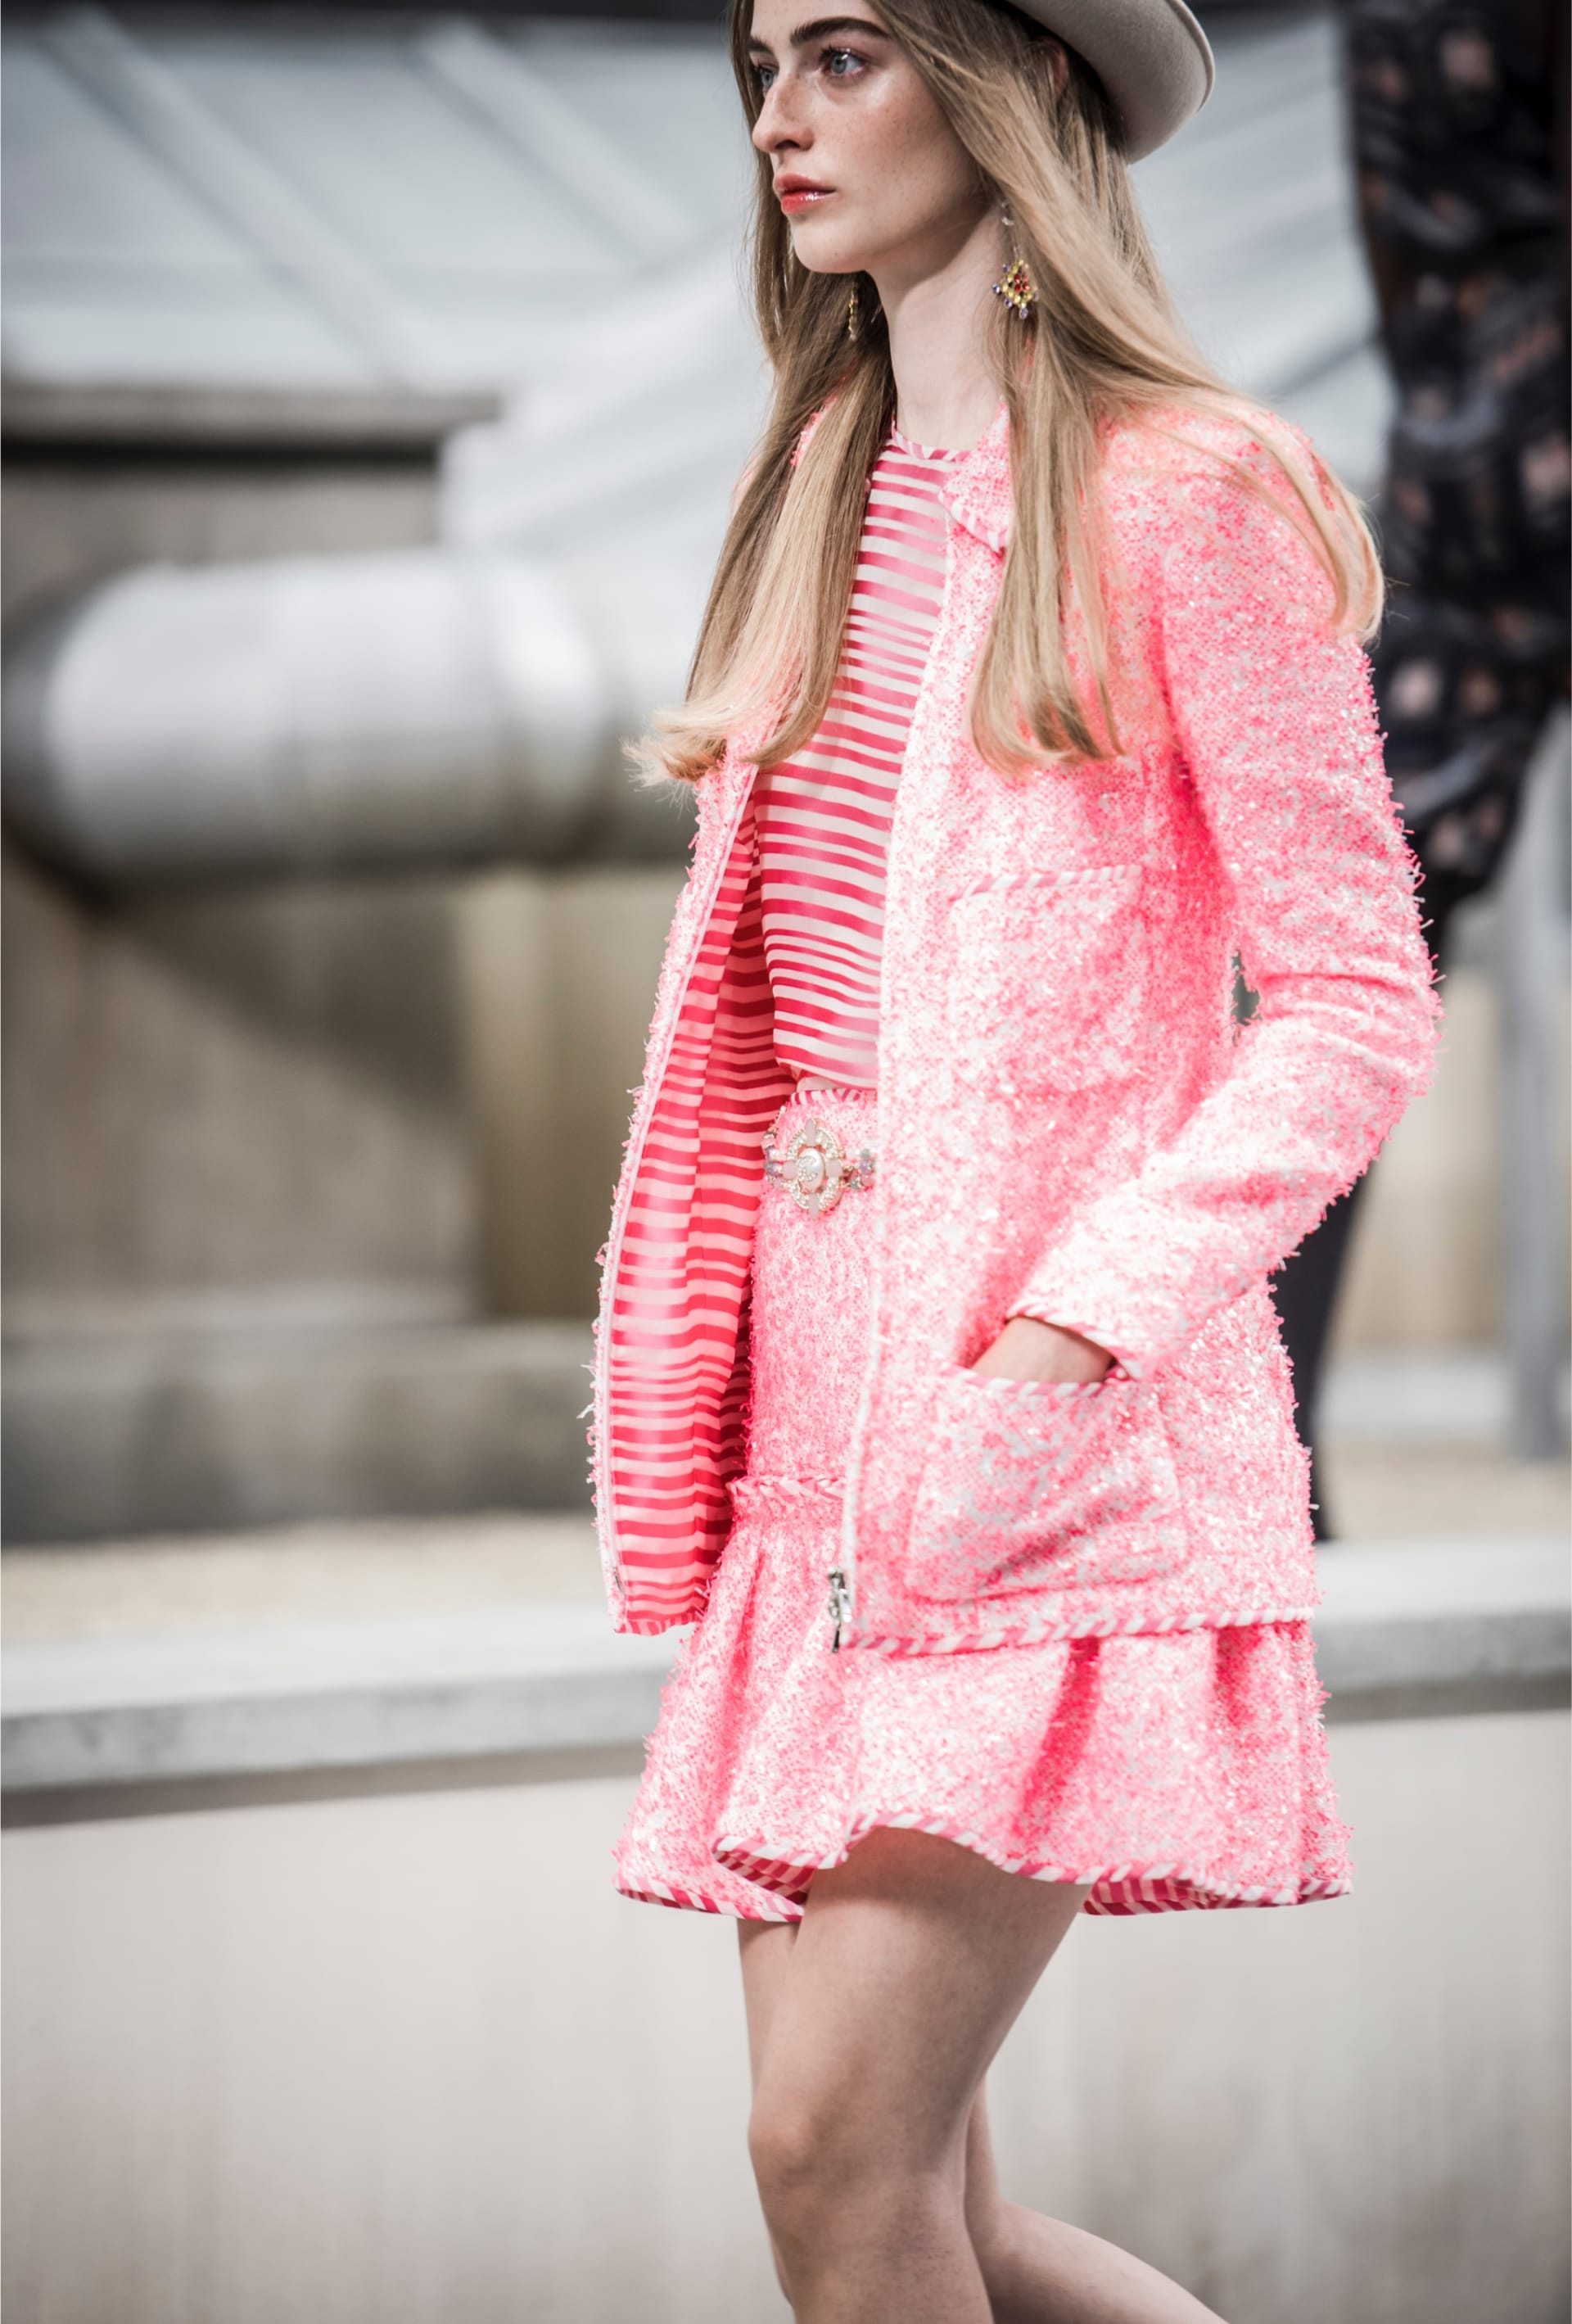 Additional image 2 - Look  47 -  - Spring-Summer 2020